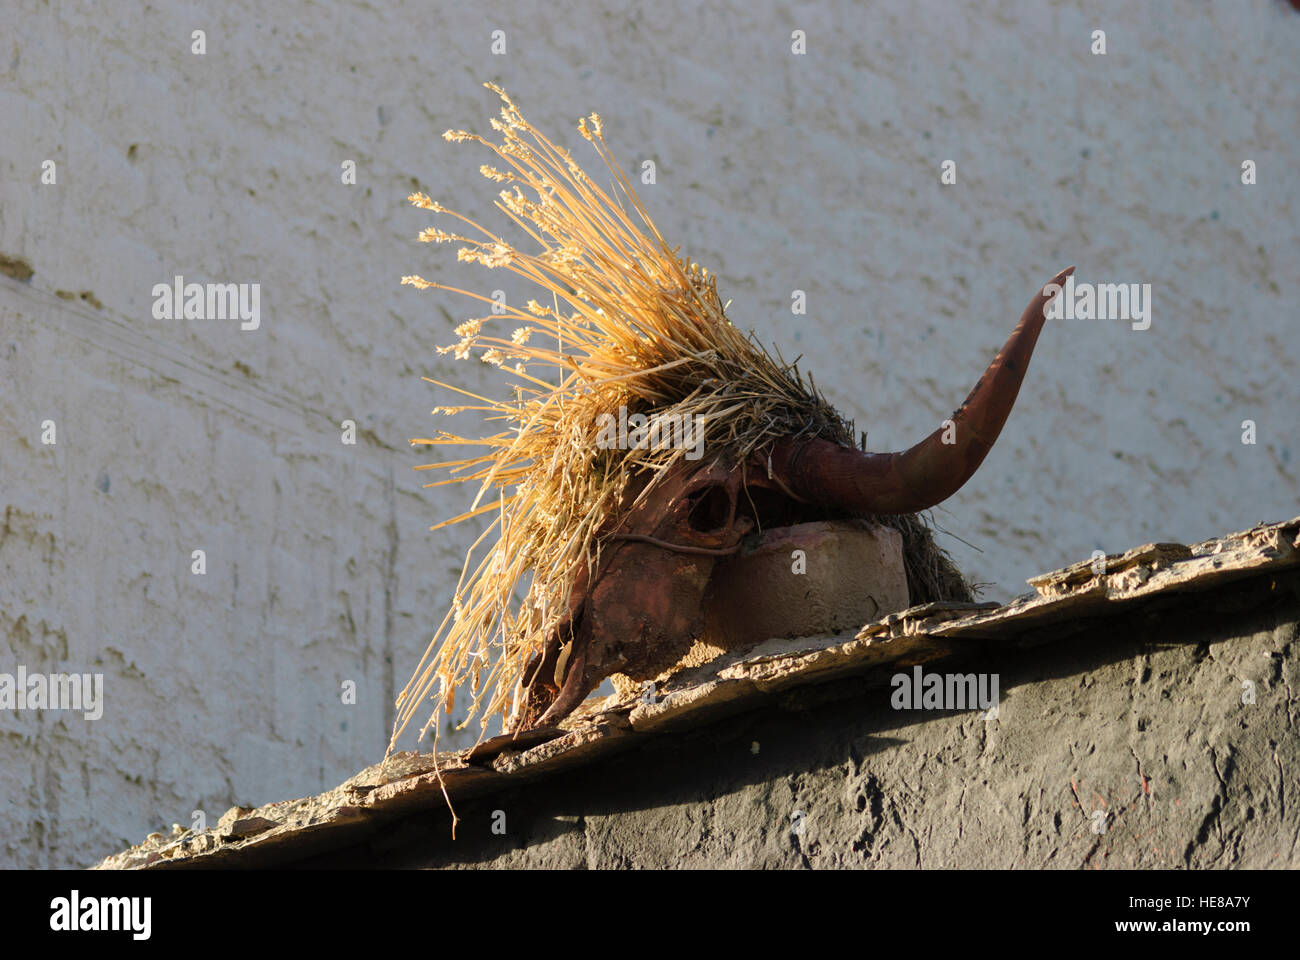 Gyantse: Yak skull on Tibetan house, Tibet, China - Stock Image